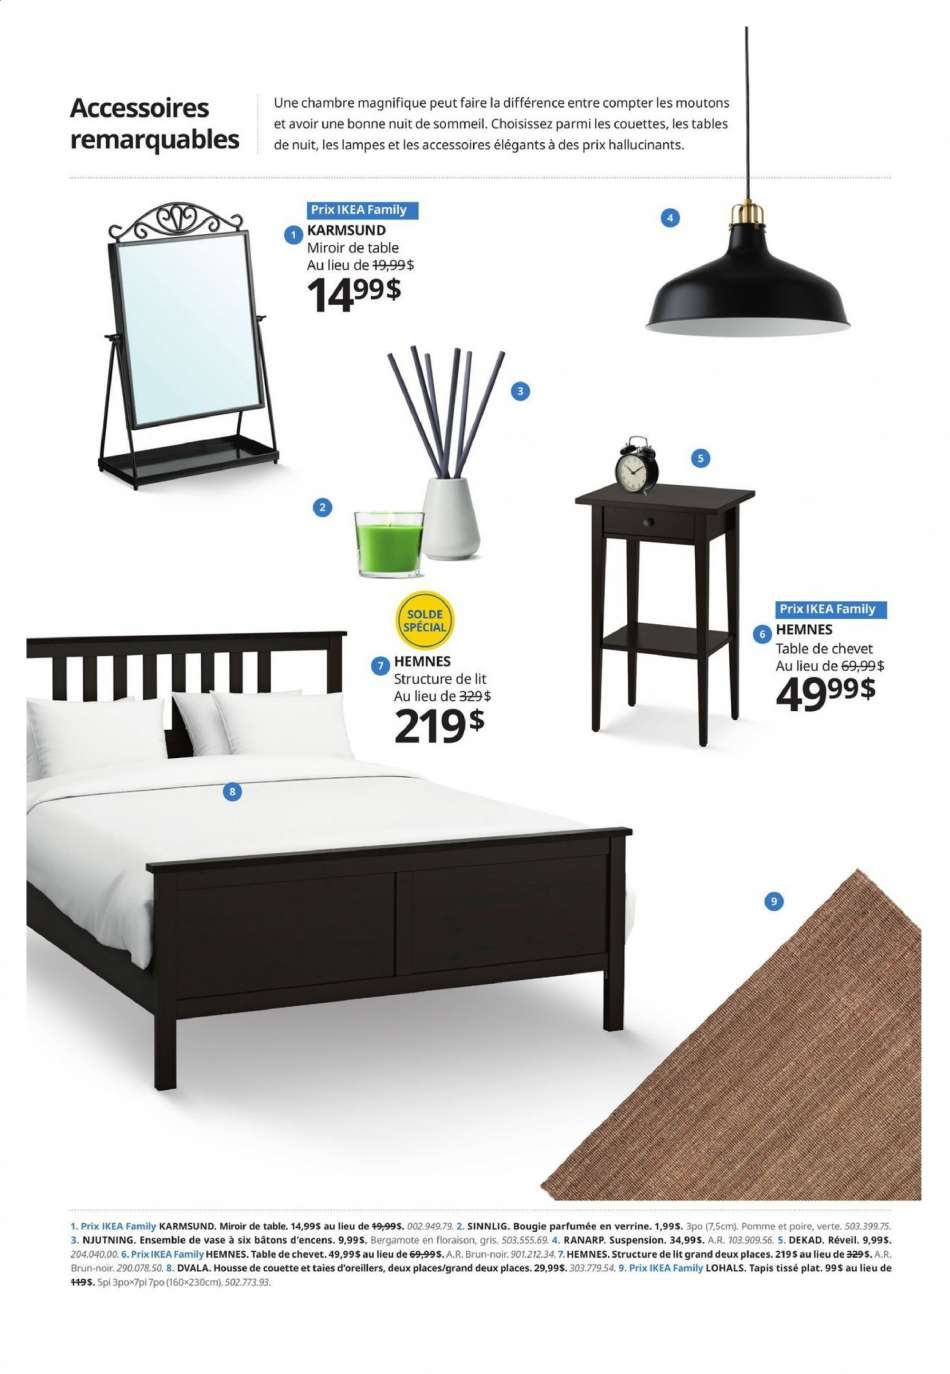 Ikea Table De Nuit current ikea flyer february 20, 2020 - march 01, 2020